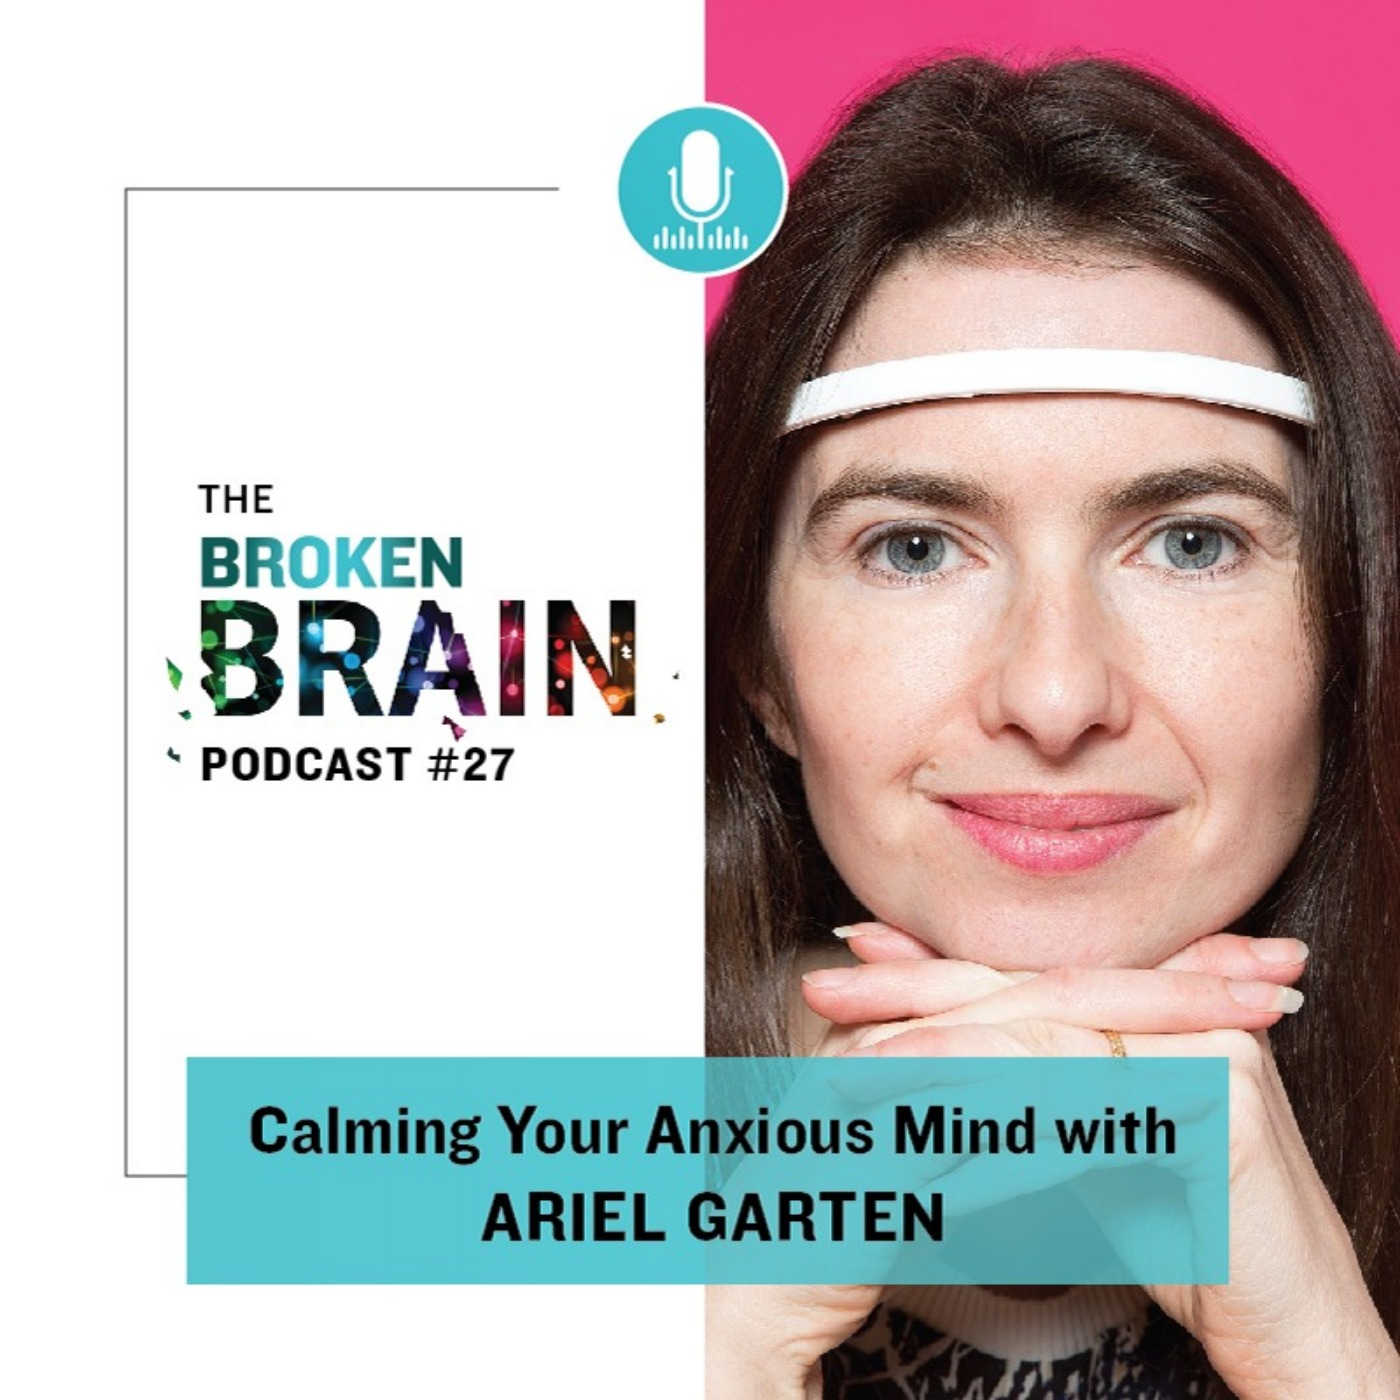 #27: Calming Your Anxious Mind with Ariel Garten